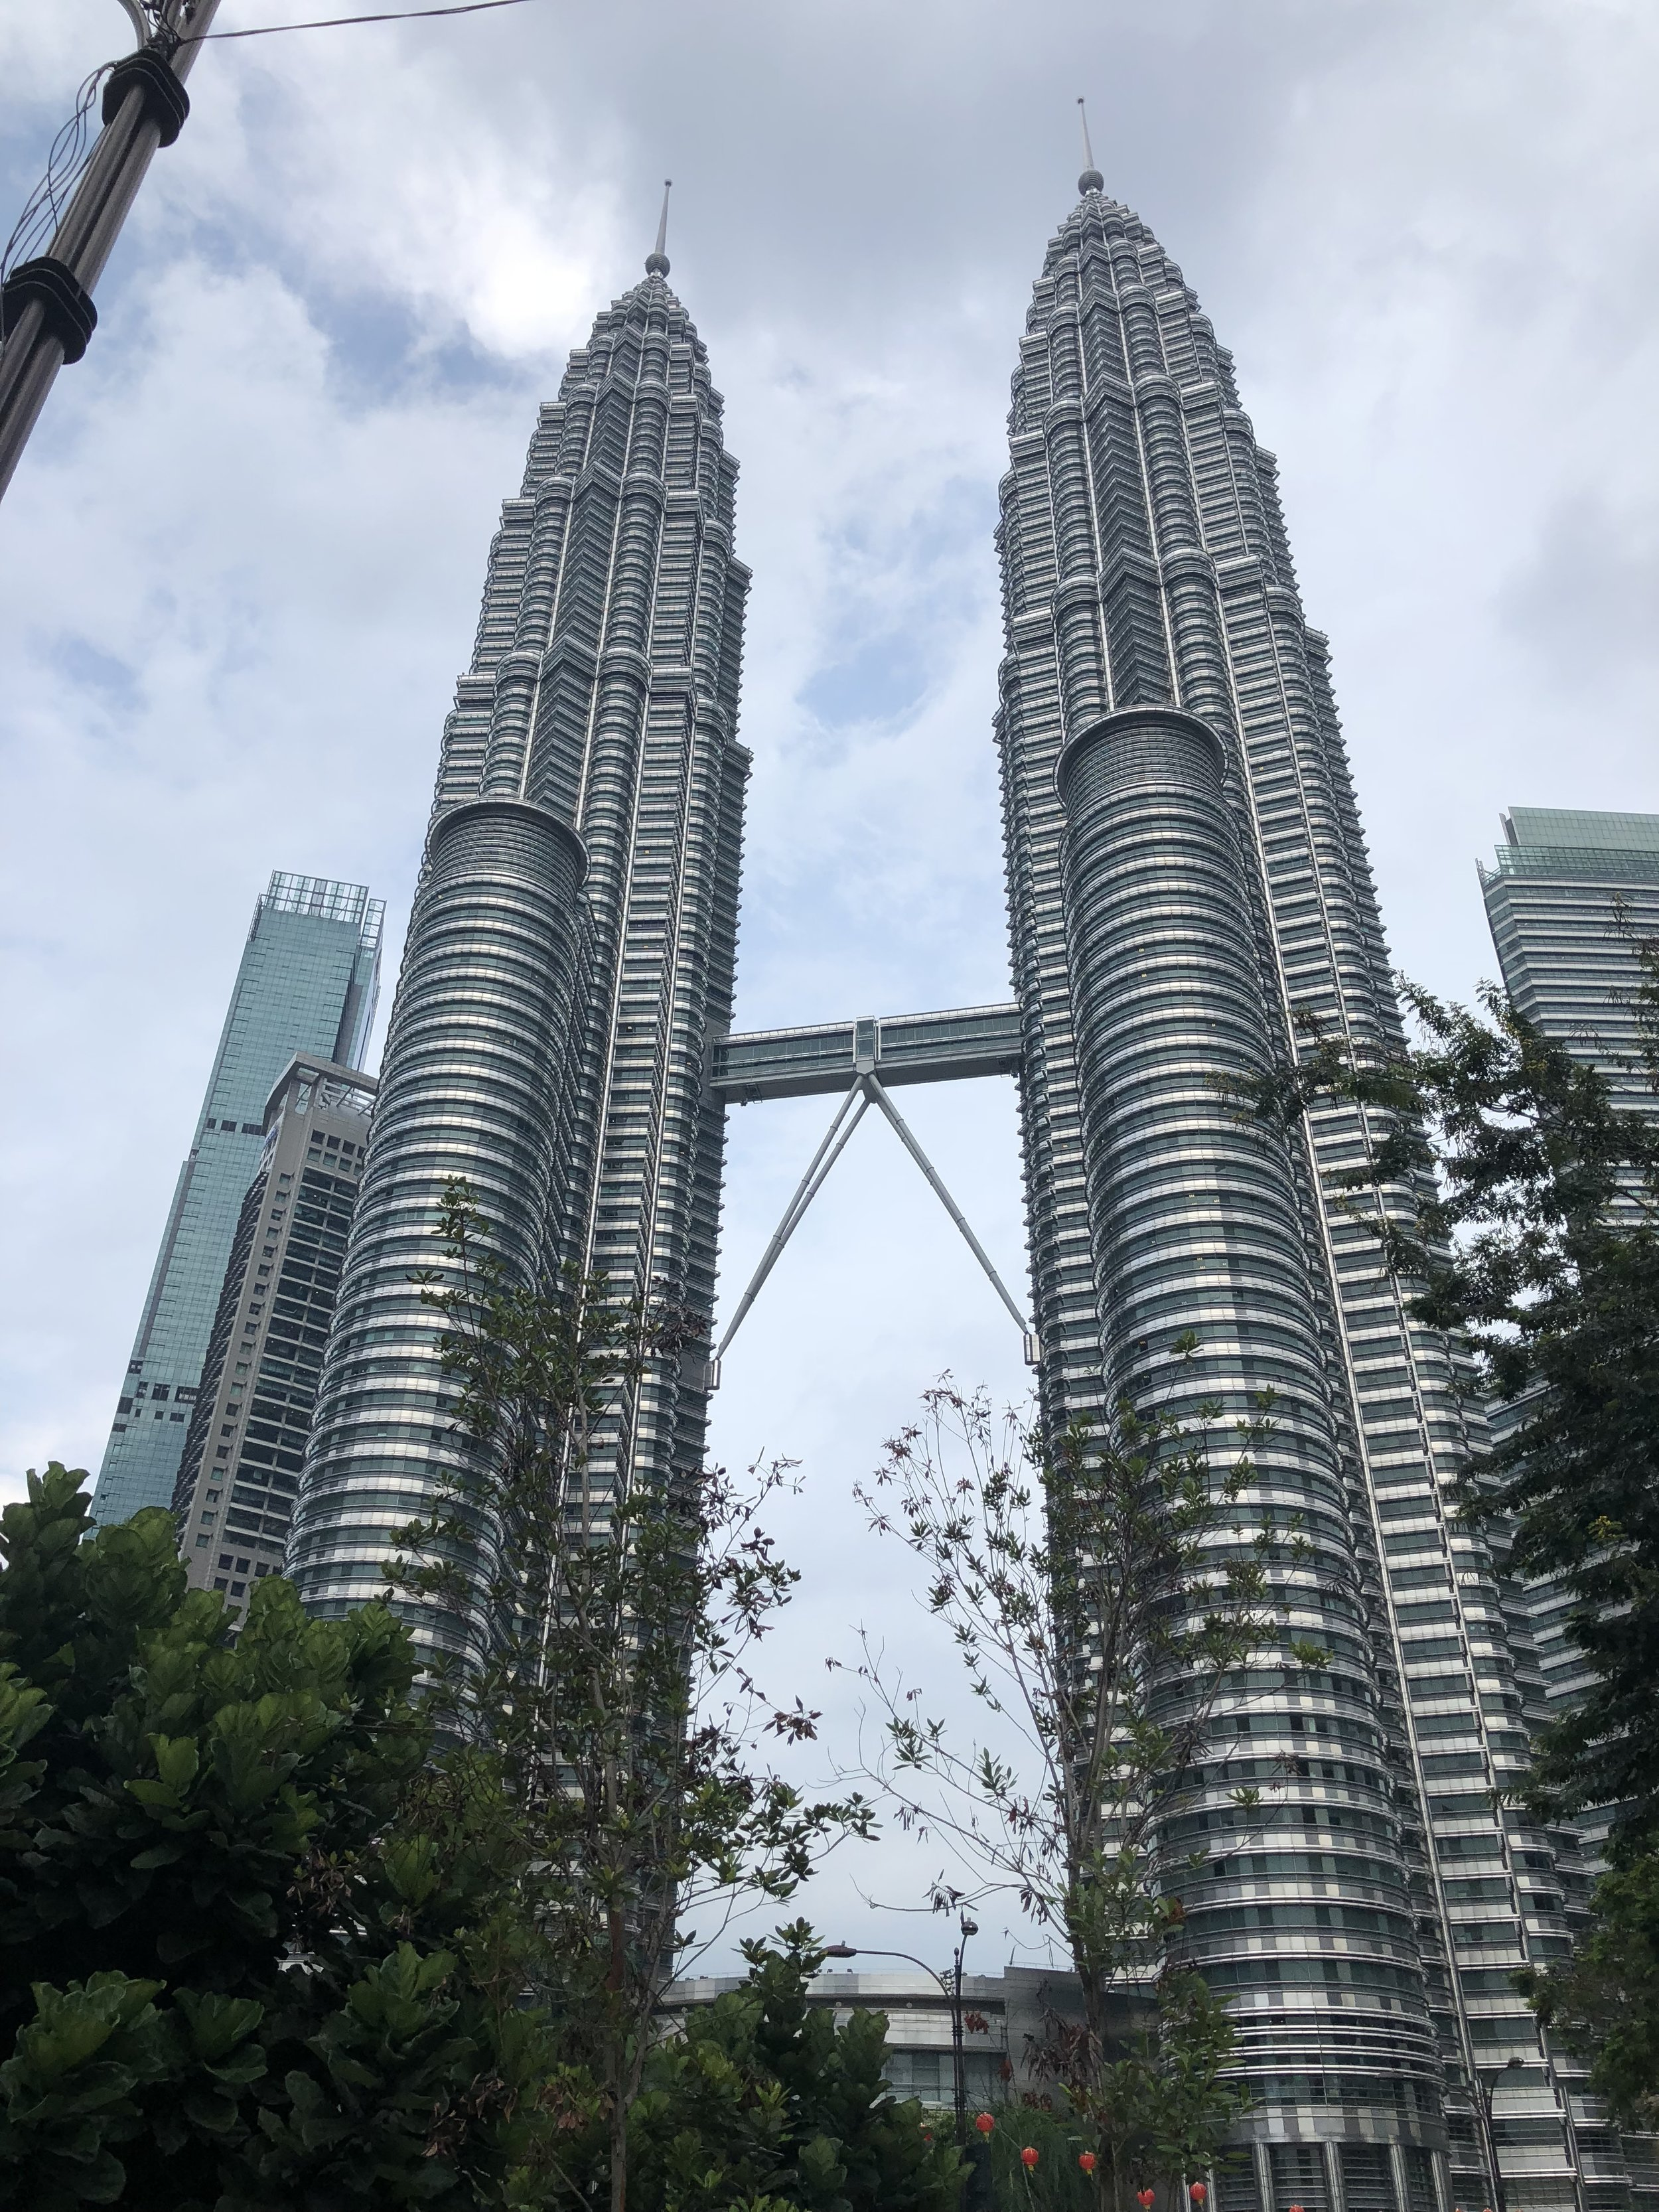 These are the tallest twin skyscrapers in the world, as known as the Petronas Twin Towers. Being from NYC, I really appreciated the view of another twin towers as I hadn't known that there were other twin towers in the world before visiting KL.